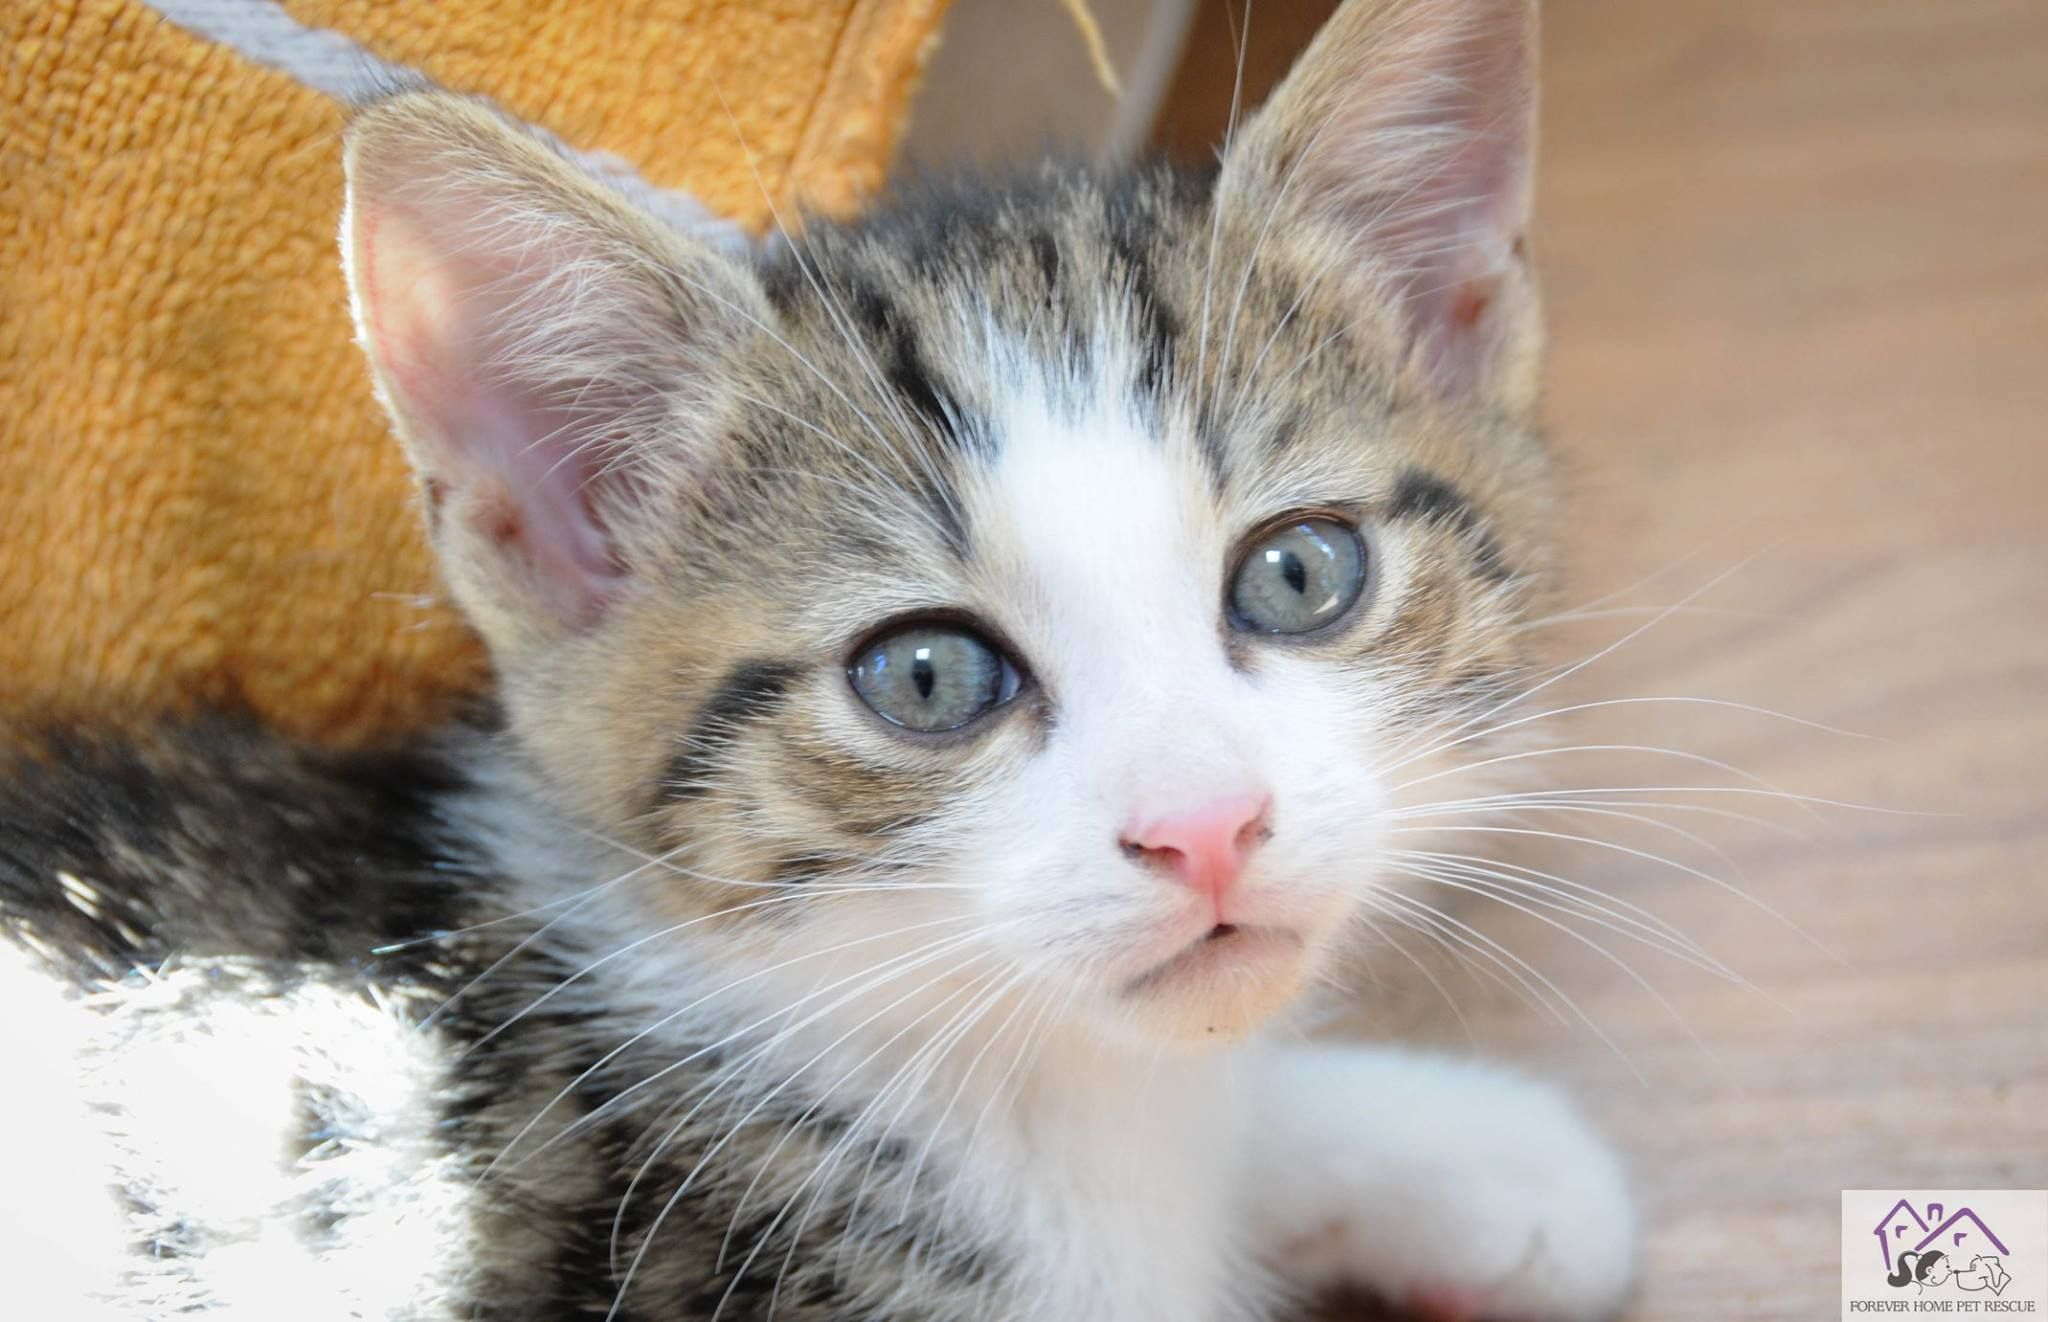 Can Kittens Be Adopted At 6 Weeks